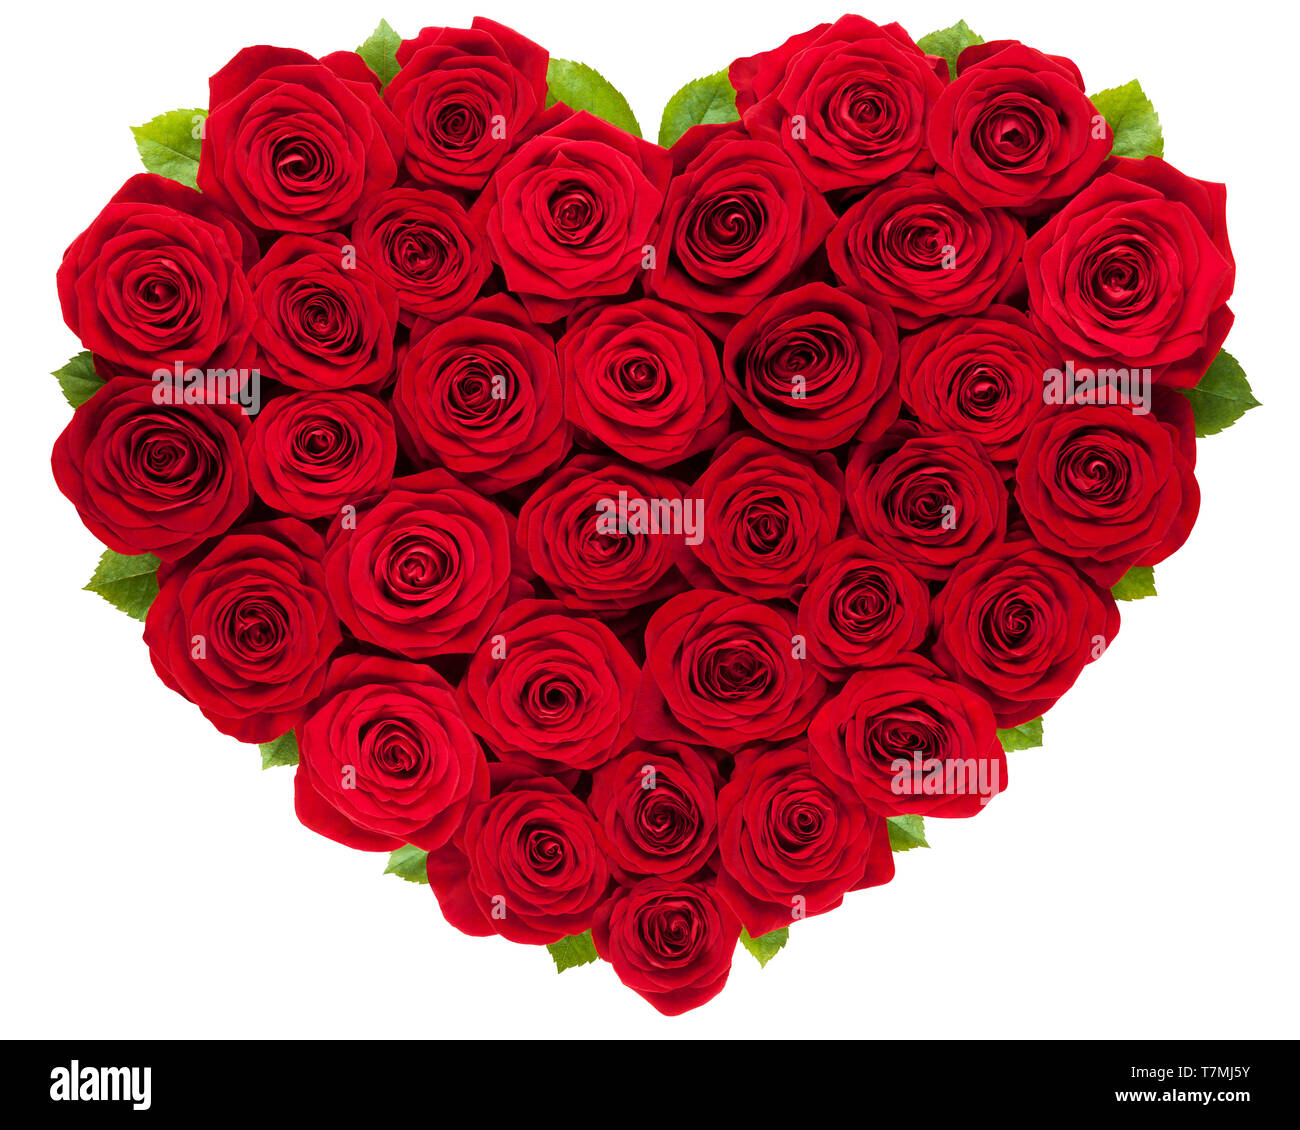 Love Red Roses Heart Isolated On White Background Stock Photo